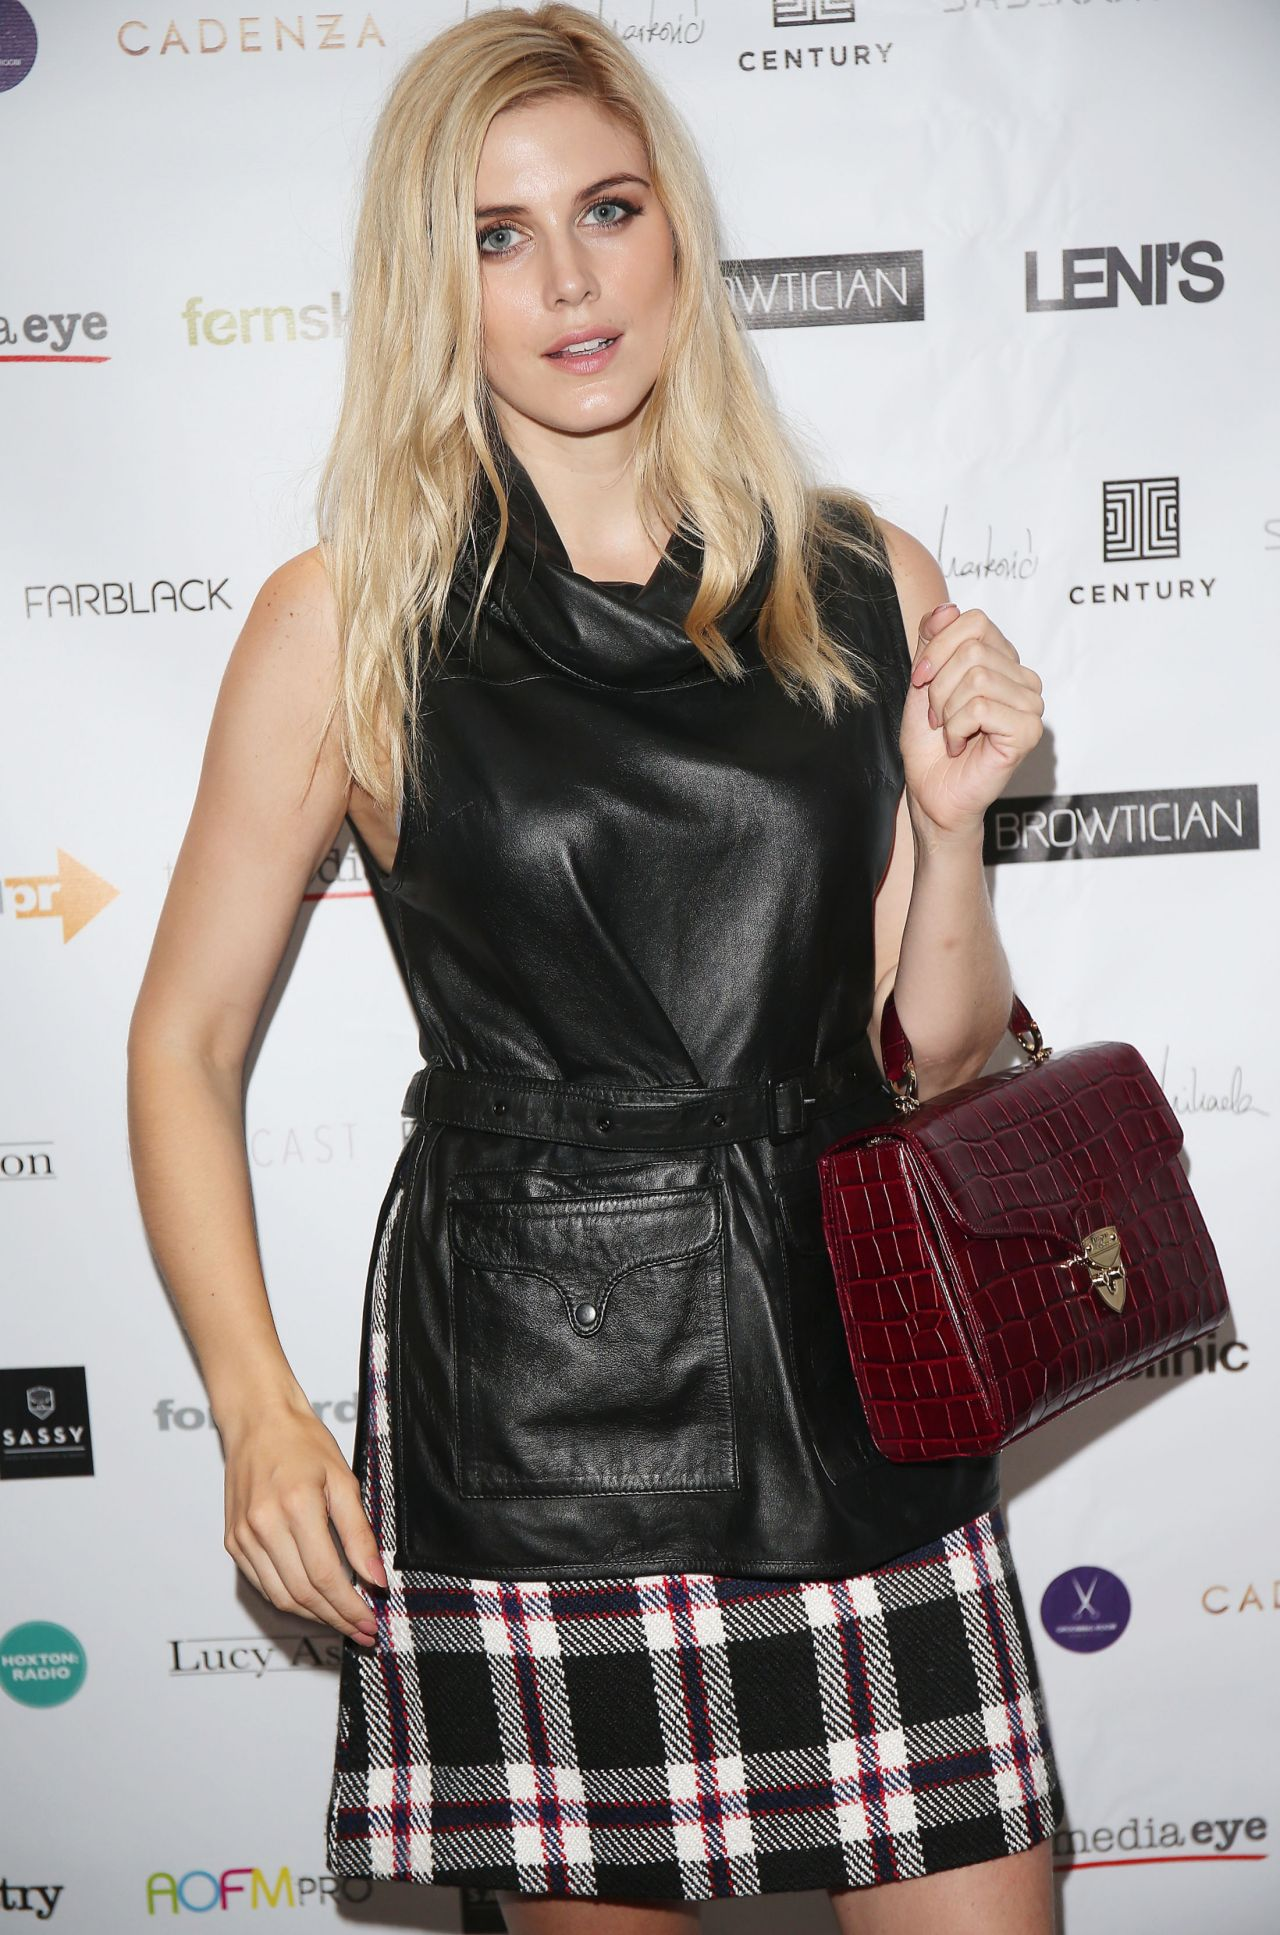 Ashley James At The Century Club In London 9 20 2016